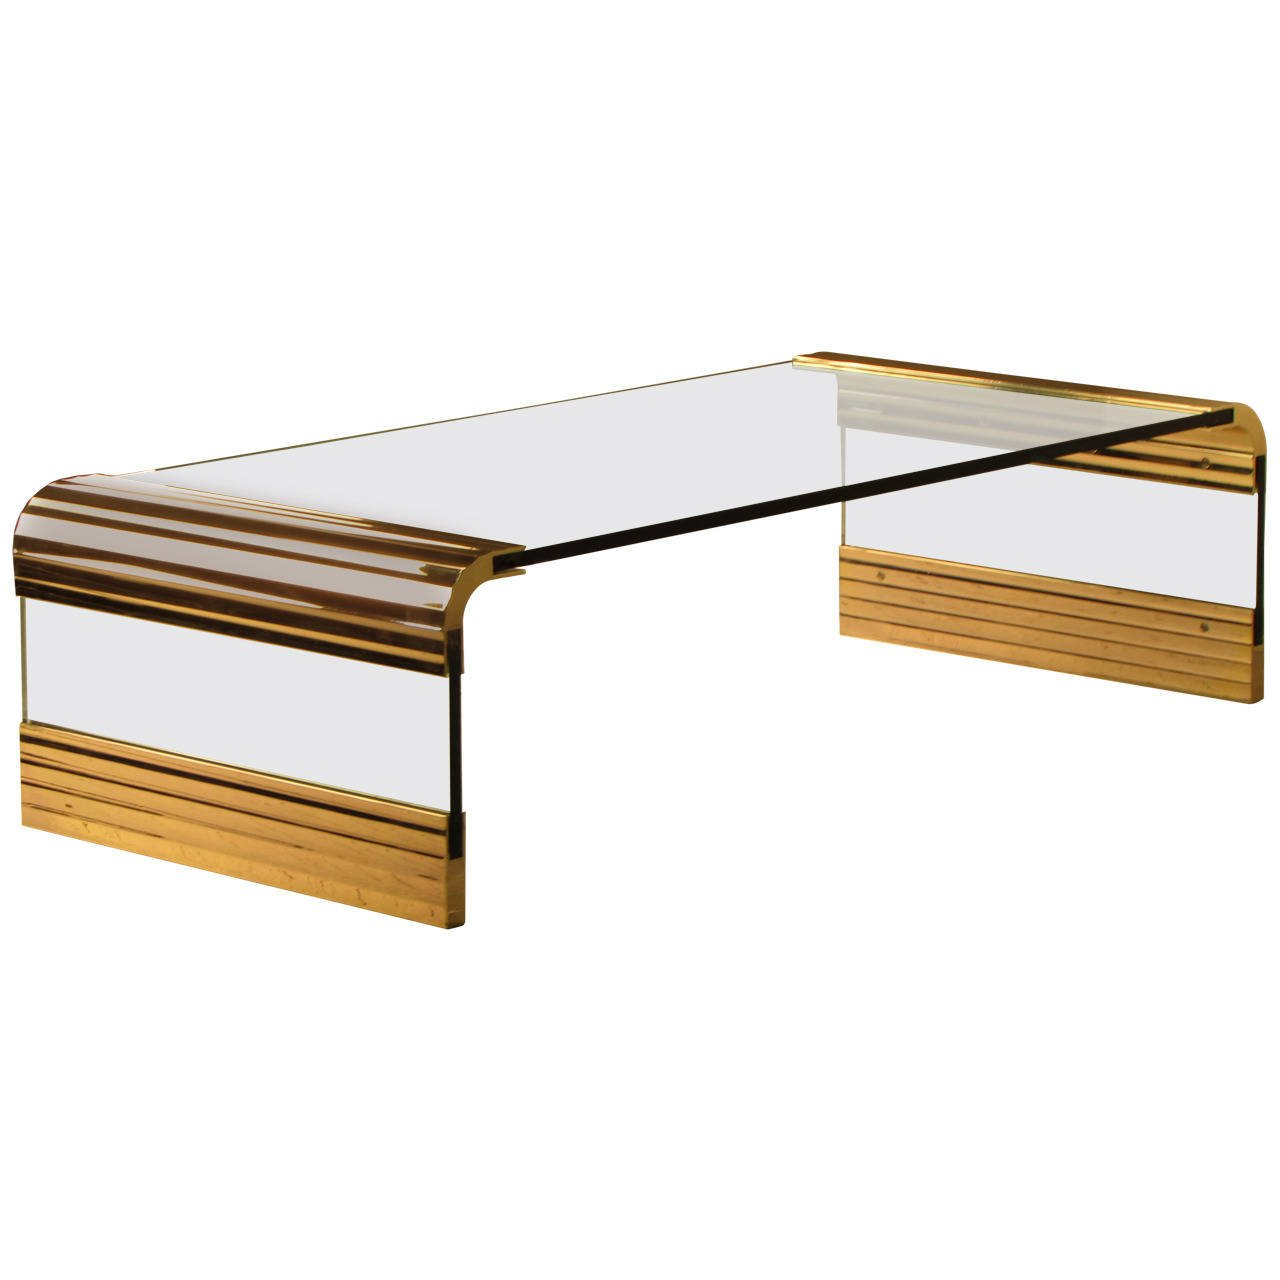 SOLD  Leon Rosen for The Pace Collection Scalloped Brass and Glass Waterfall Cocktail Table